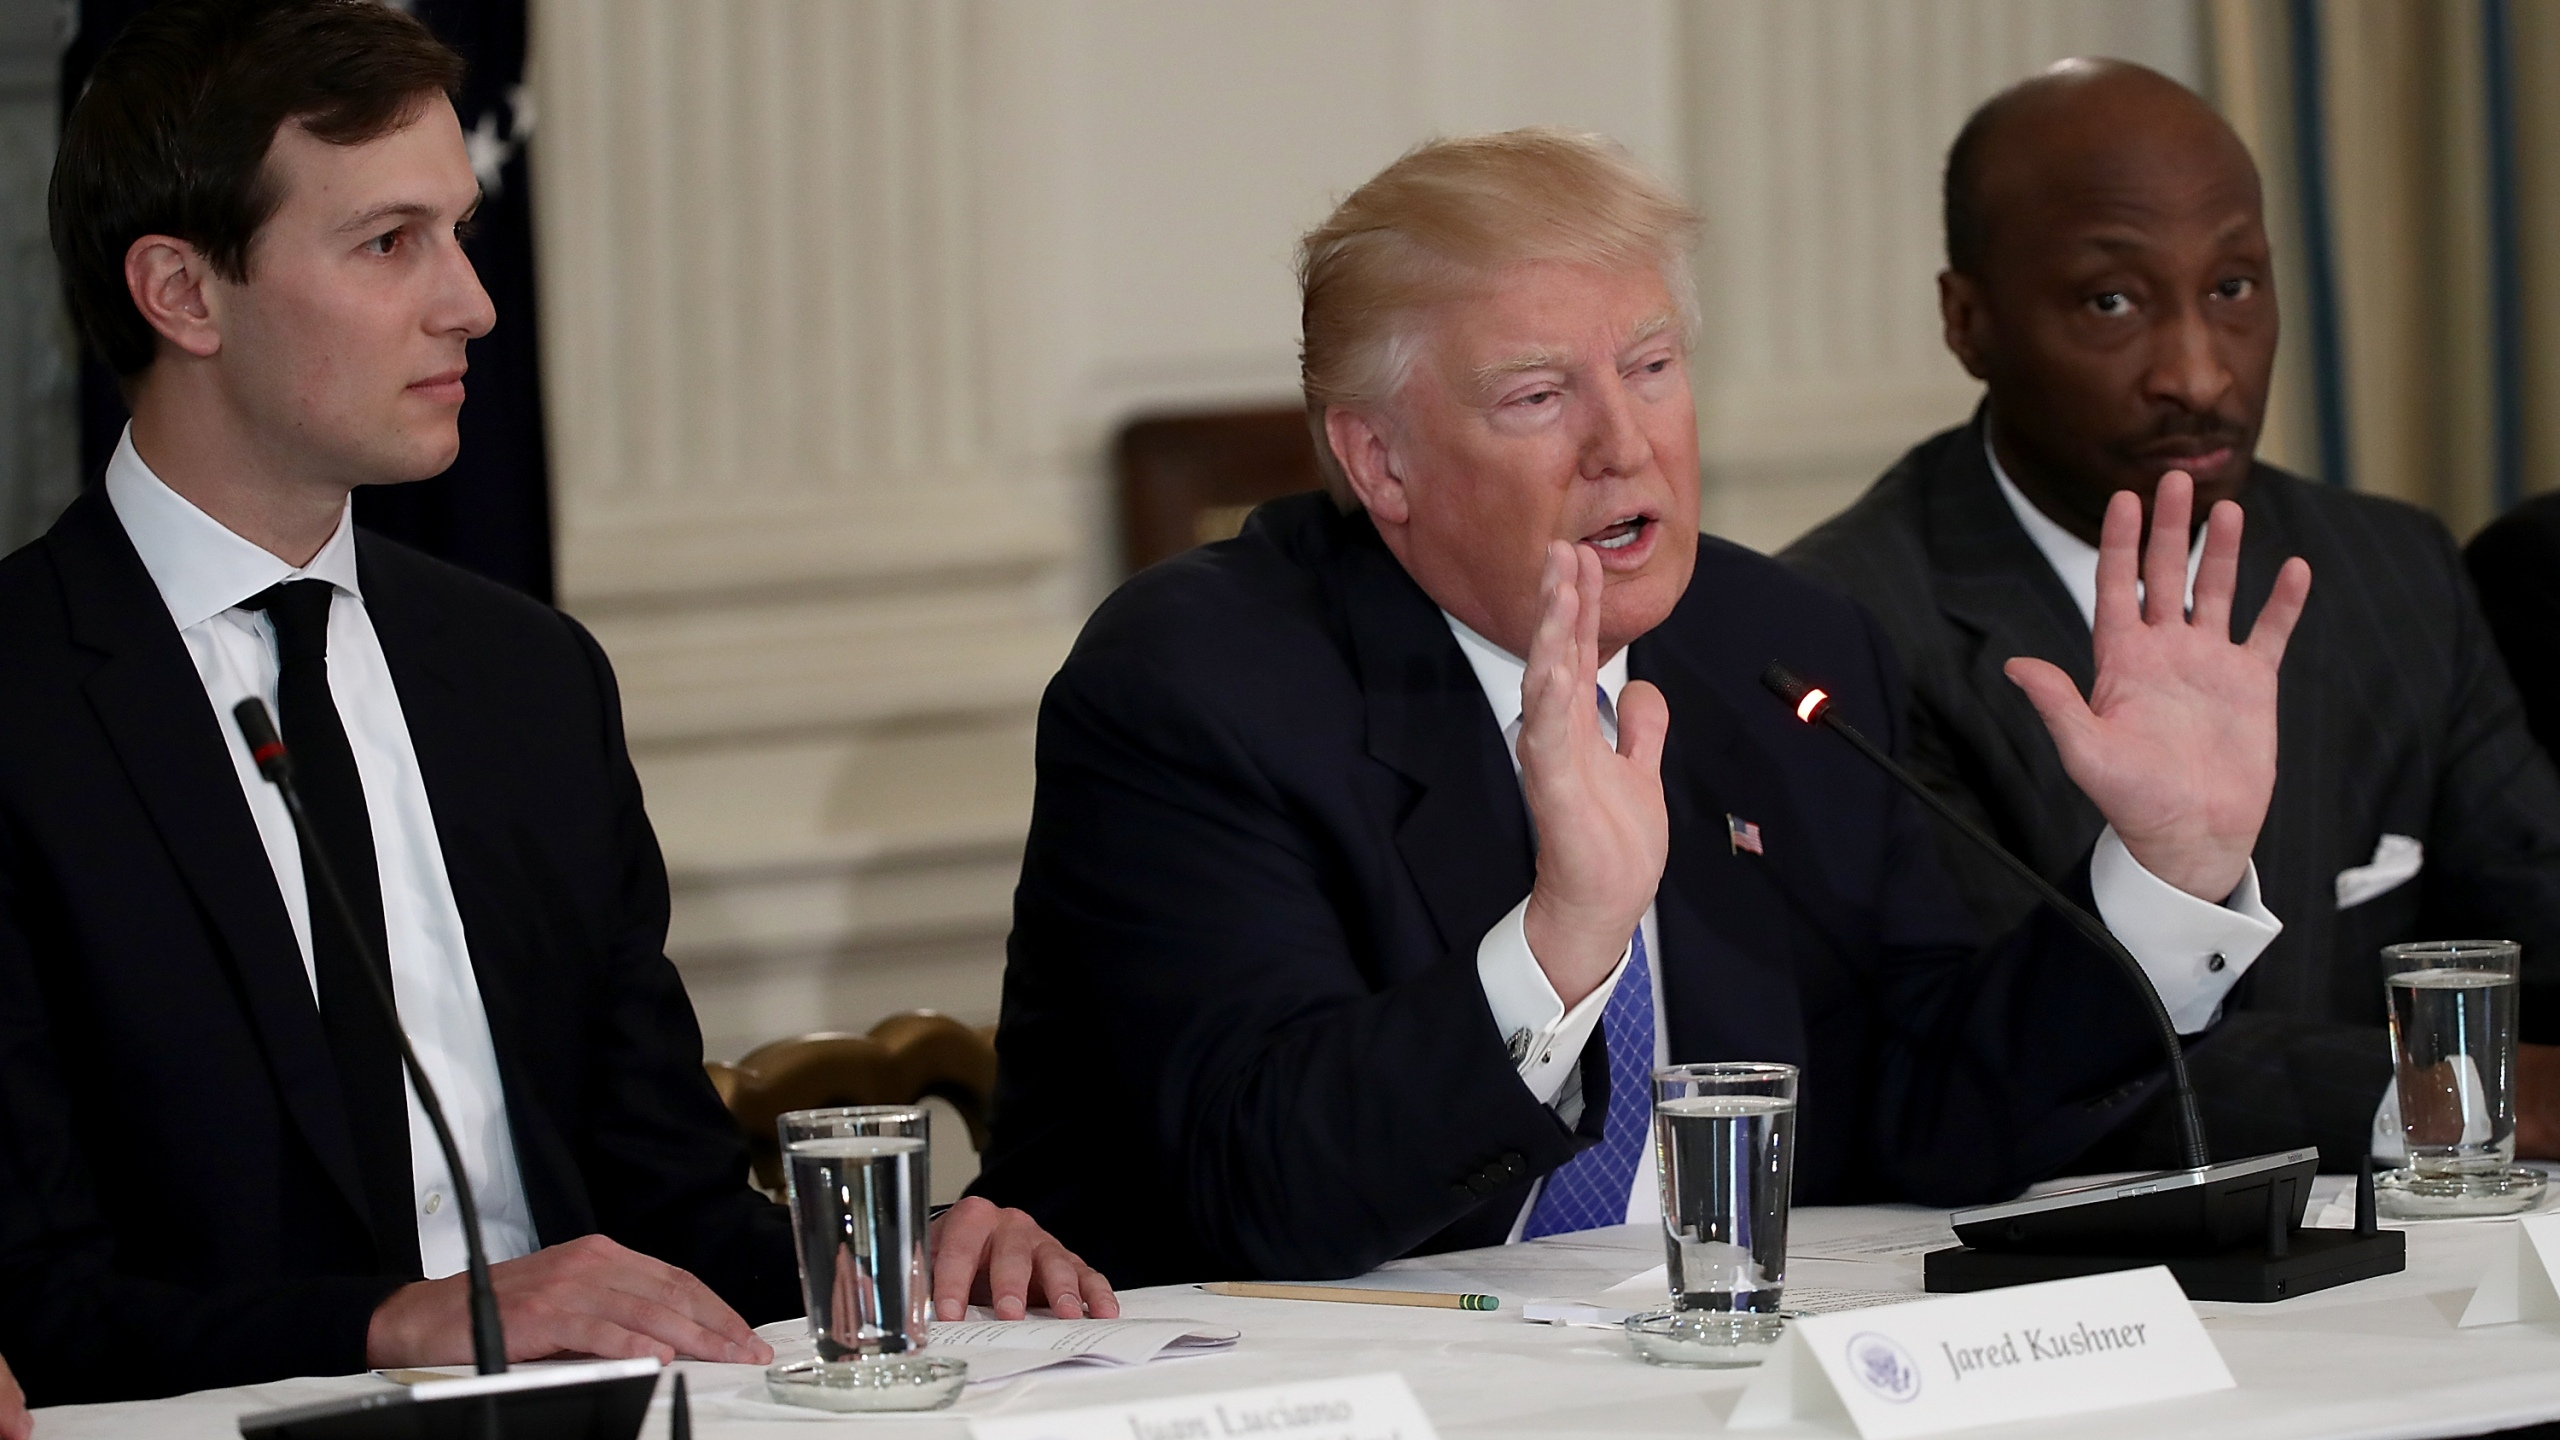 President Donald Trump speaks during the opening of a listening session with manufacturing CEOs at the White House Feb.y 23, 2017. Also pictured are Kenneth Frazier, right, CEO of Merck & Co. and Jared Kushner, left, senior advisor to the president. (Credit: Win McNamee/Getty Images)